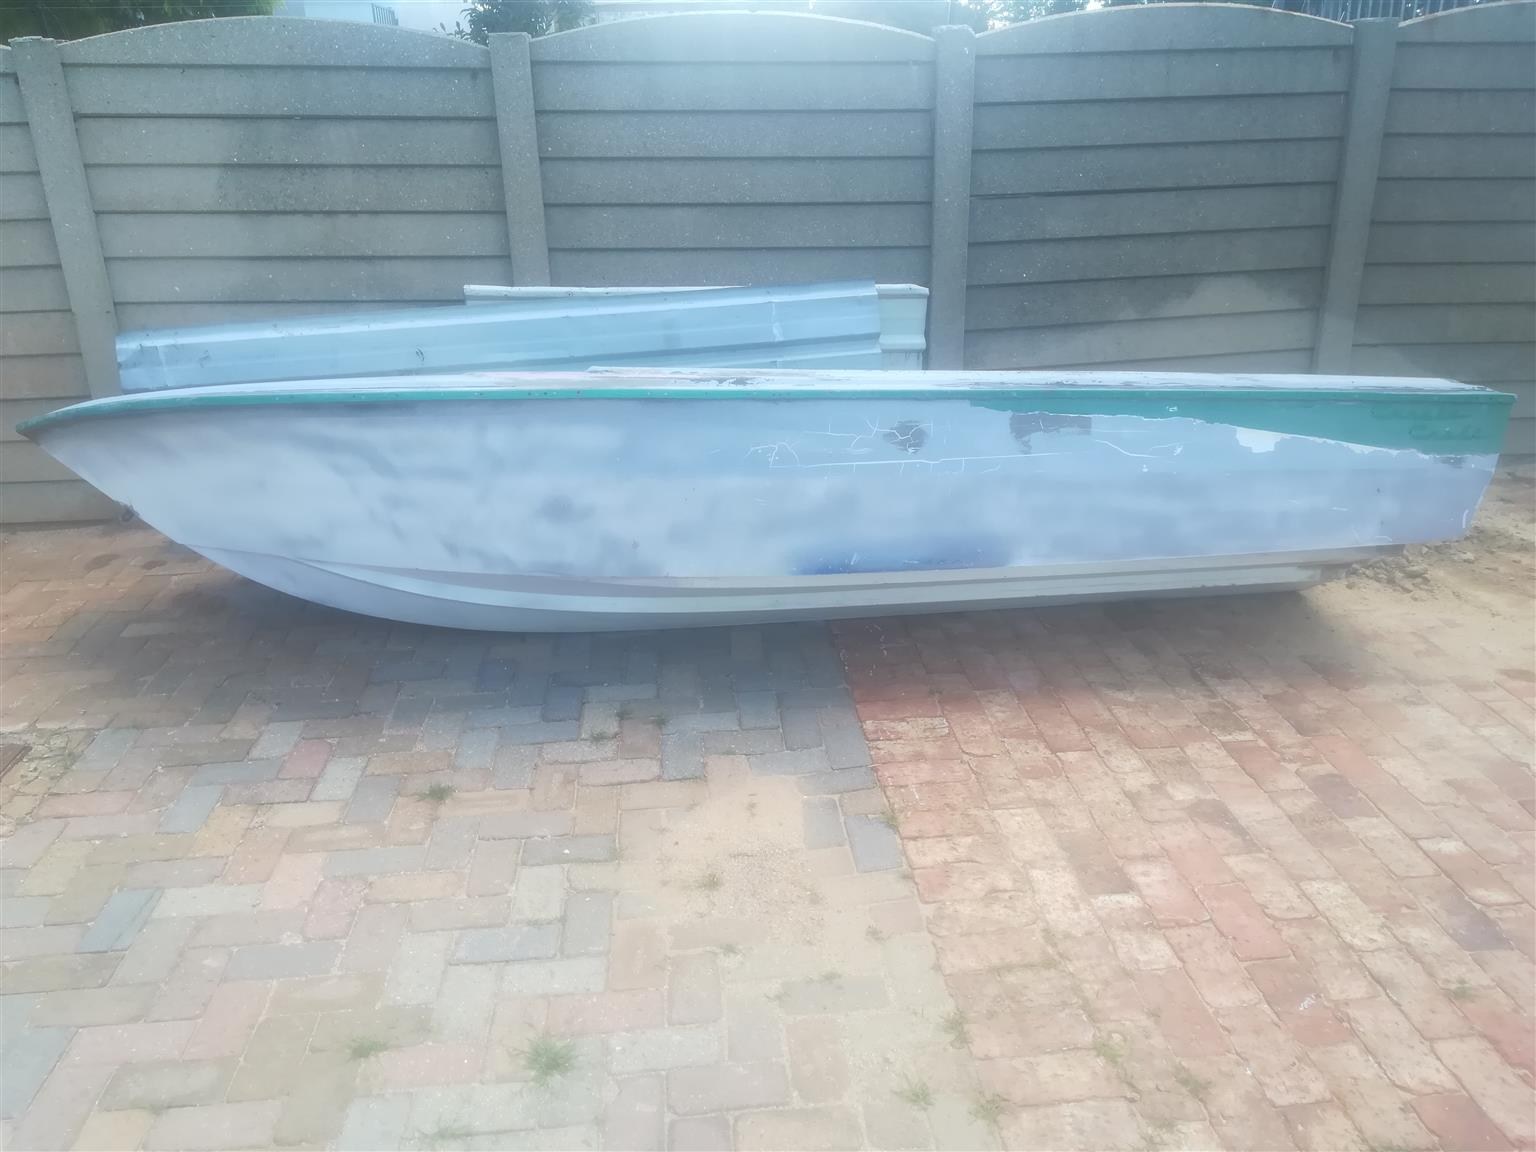 Speed Boat Shell for sale